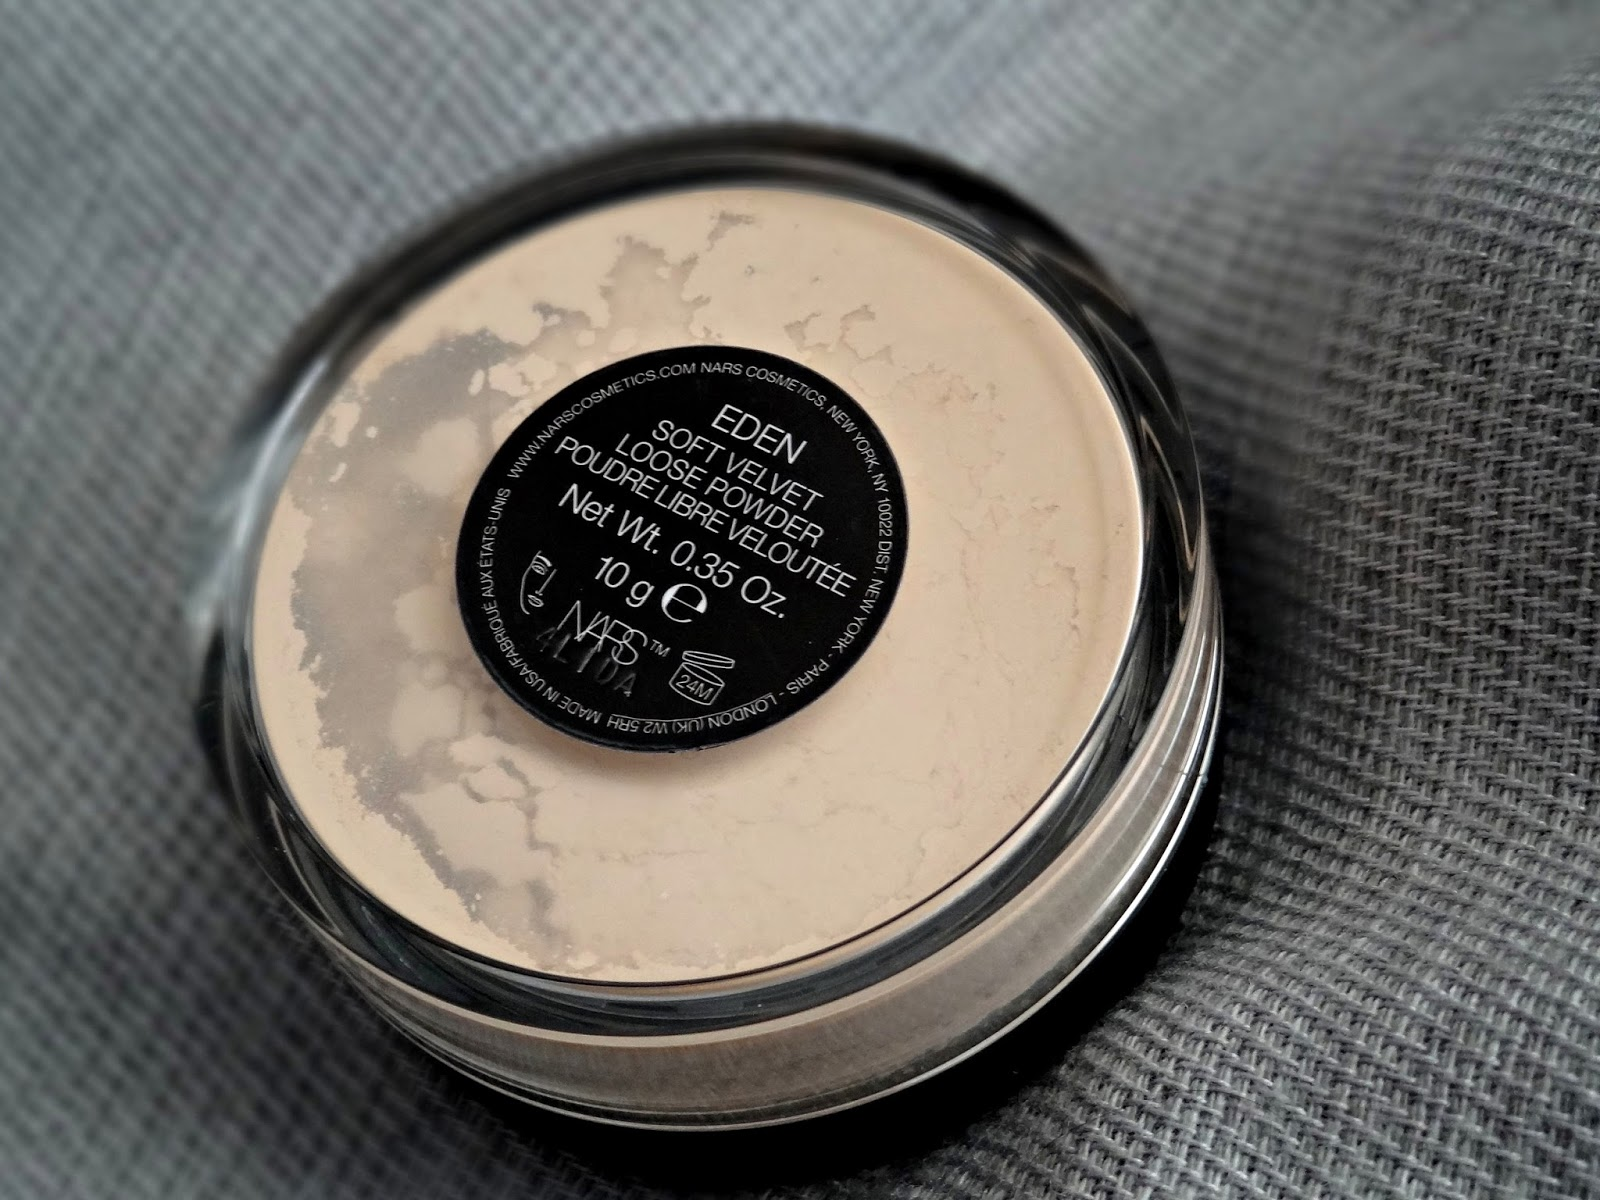 NARS Soft Velvet Loose Powder in Eden Review, Photos & Swatches